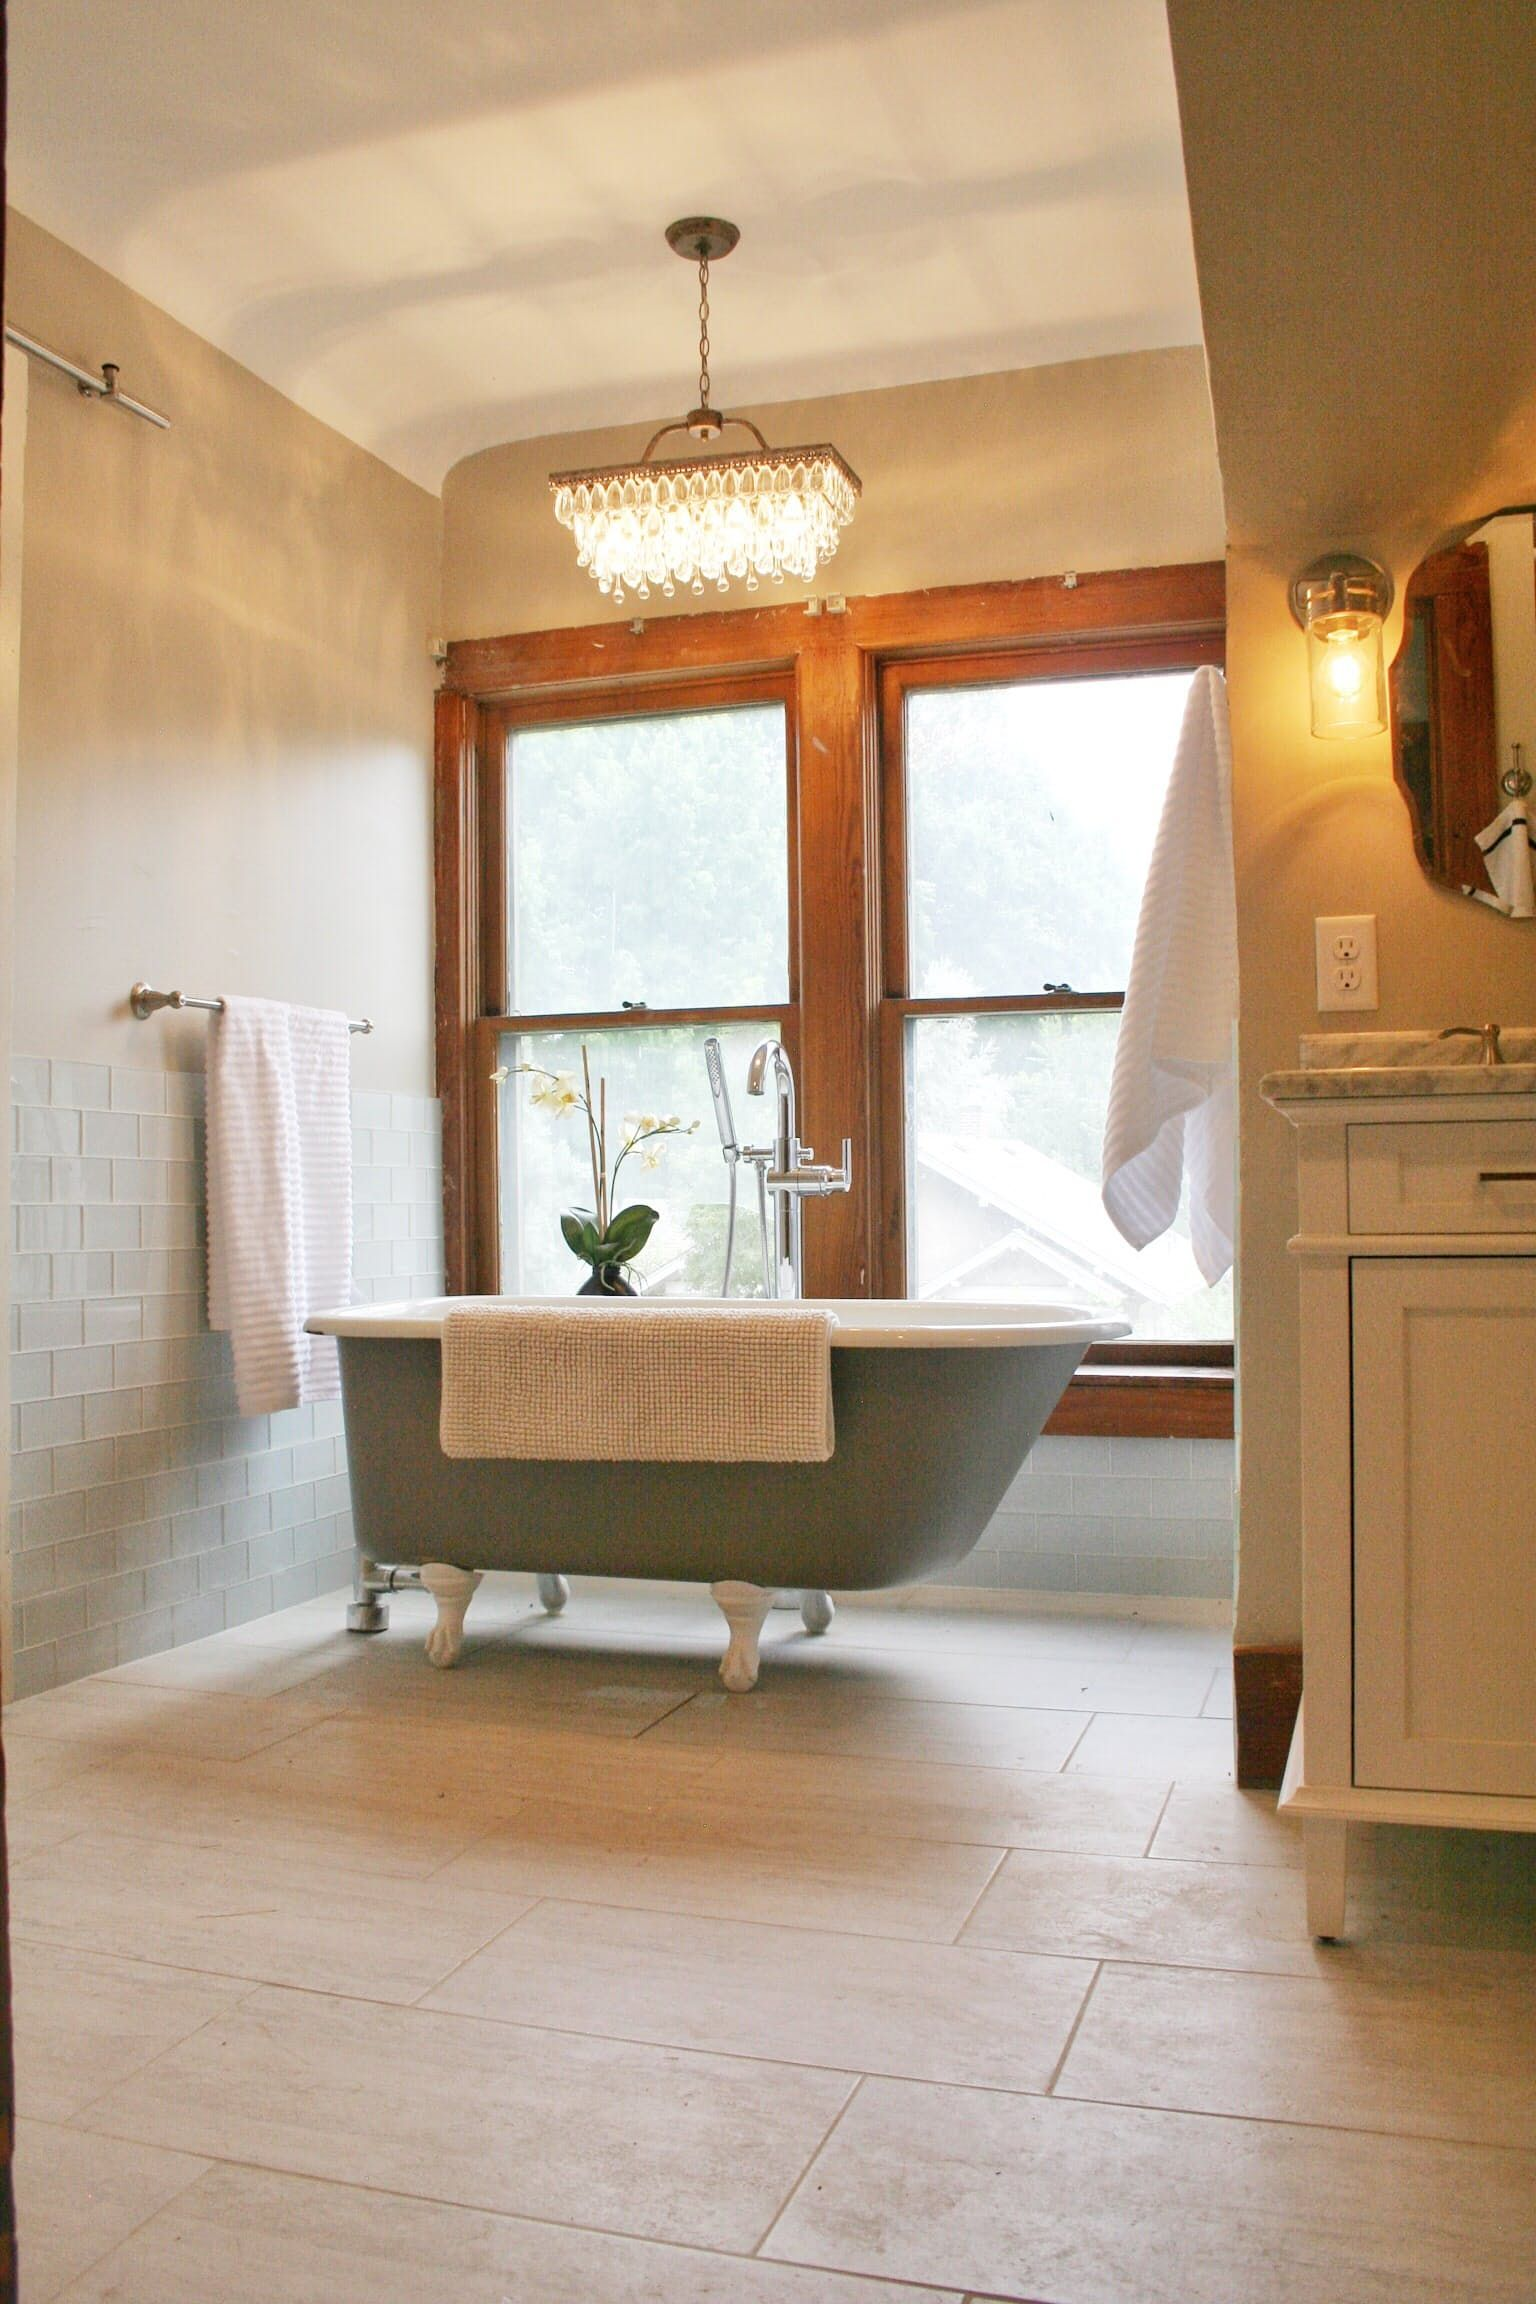 Bathroom Remodel Fort Collins a $20k bathroom remodel beautifully blends old & new